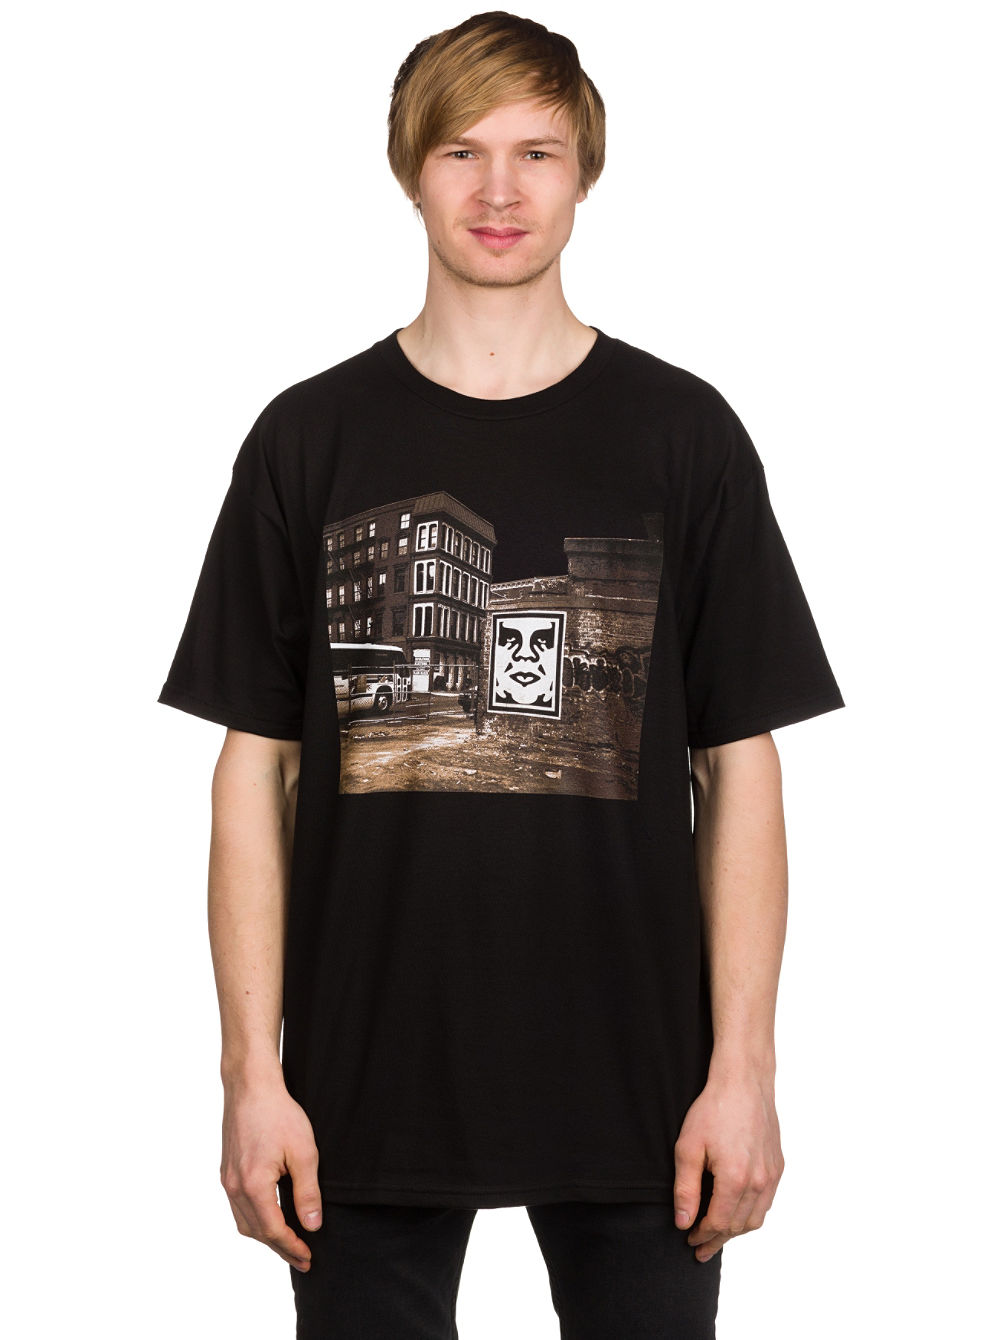 obey-obey-bus-photo-basic-t-shirt